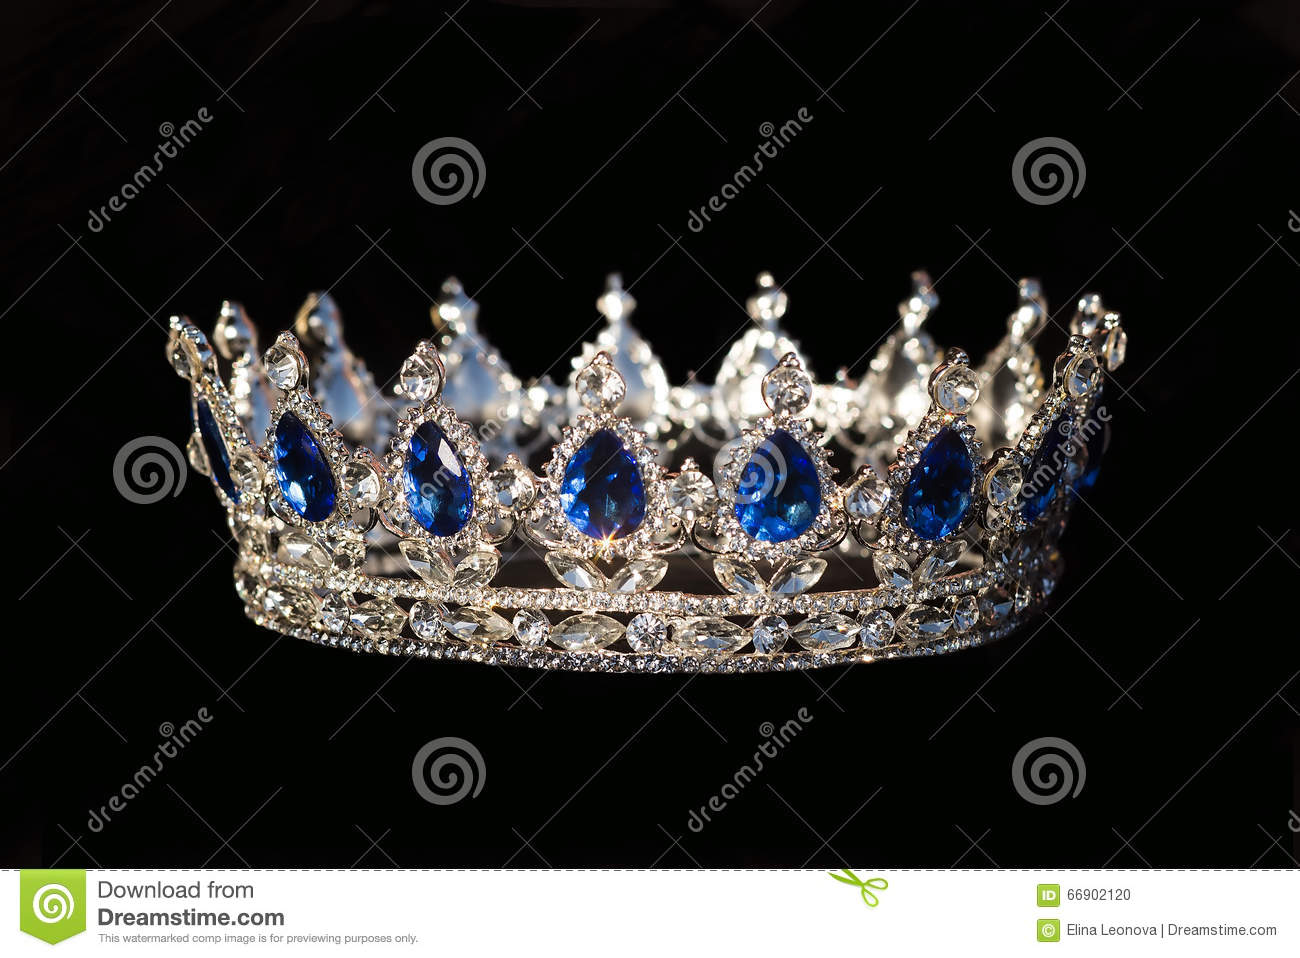 Royal crown with sapphire on black background